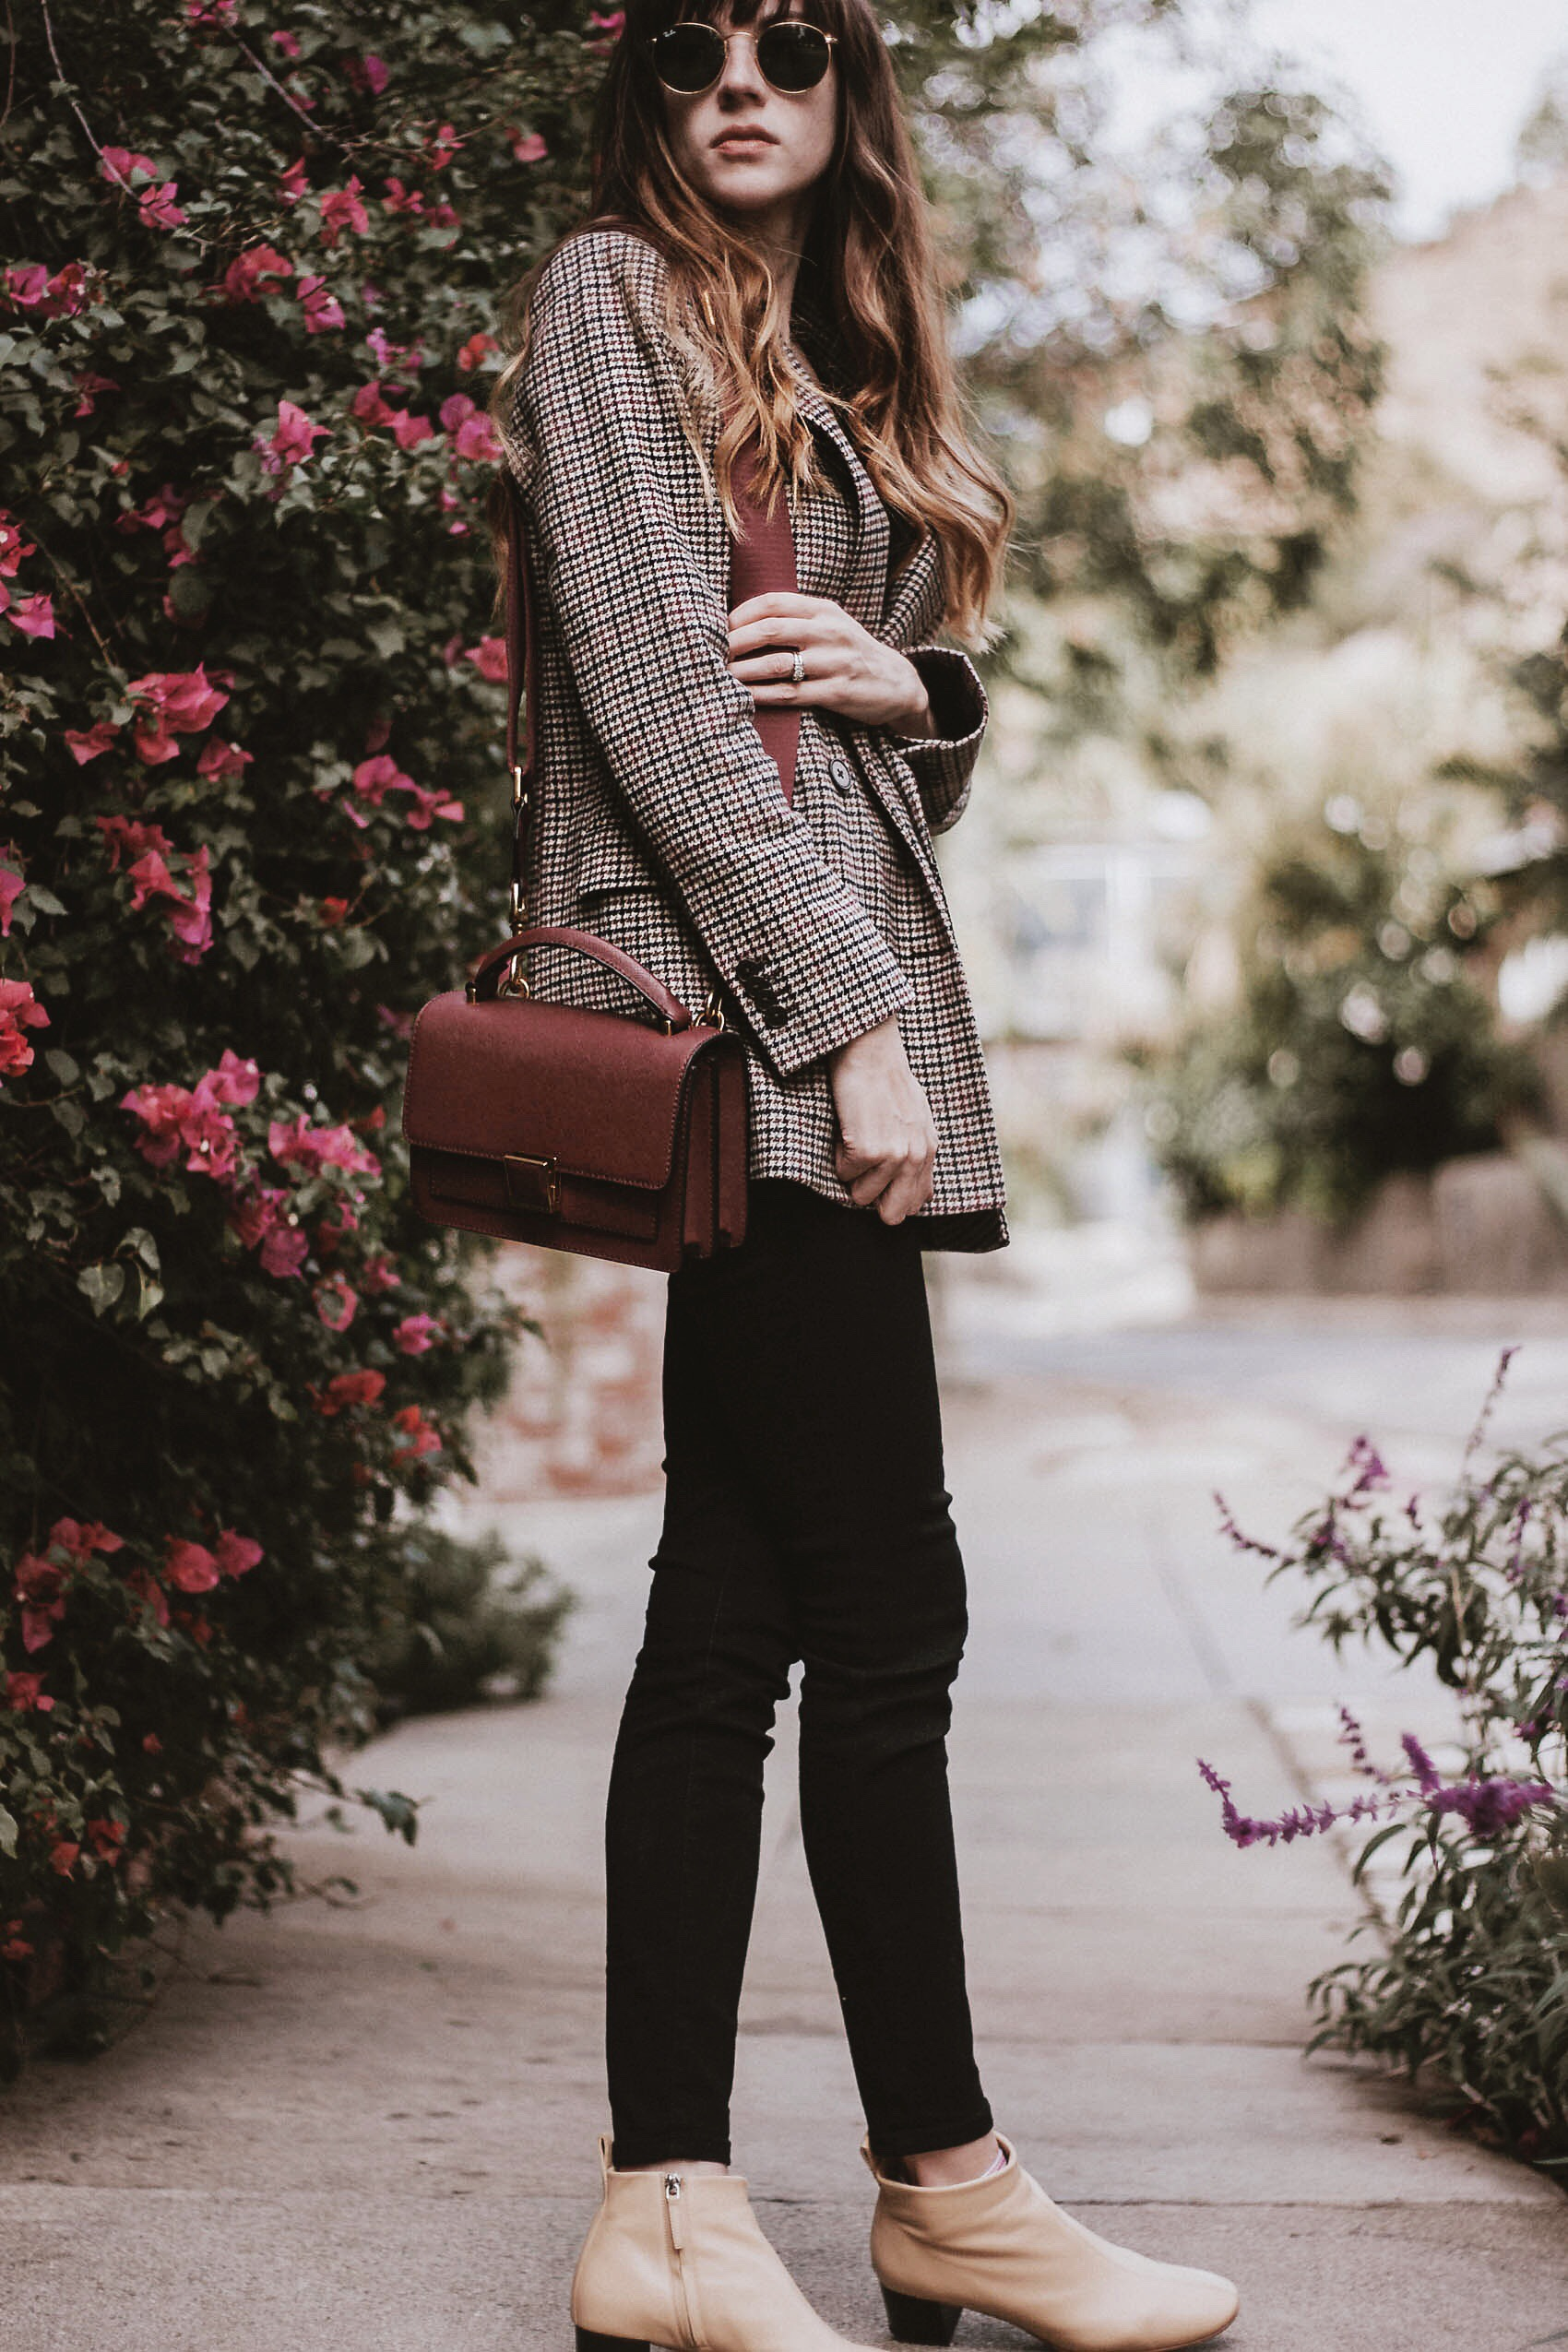 Etienne Aigner maroon bag, Frank and Oak Blazer, Everlane Authentic Stretch denim, Everlane Day Boots